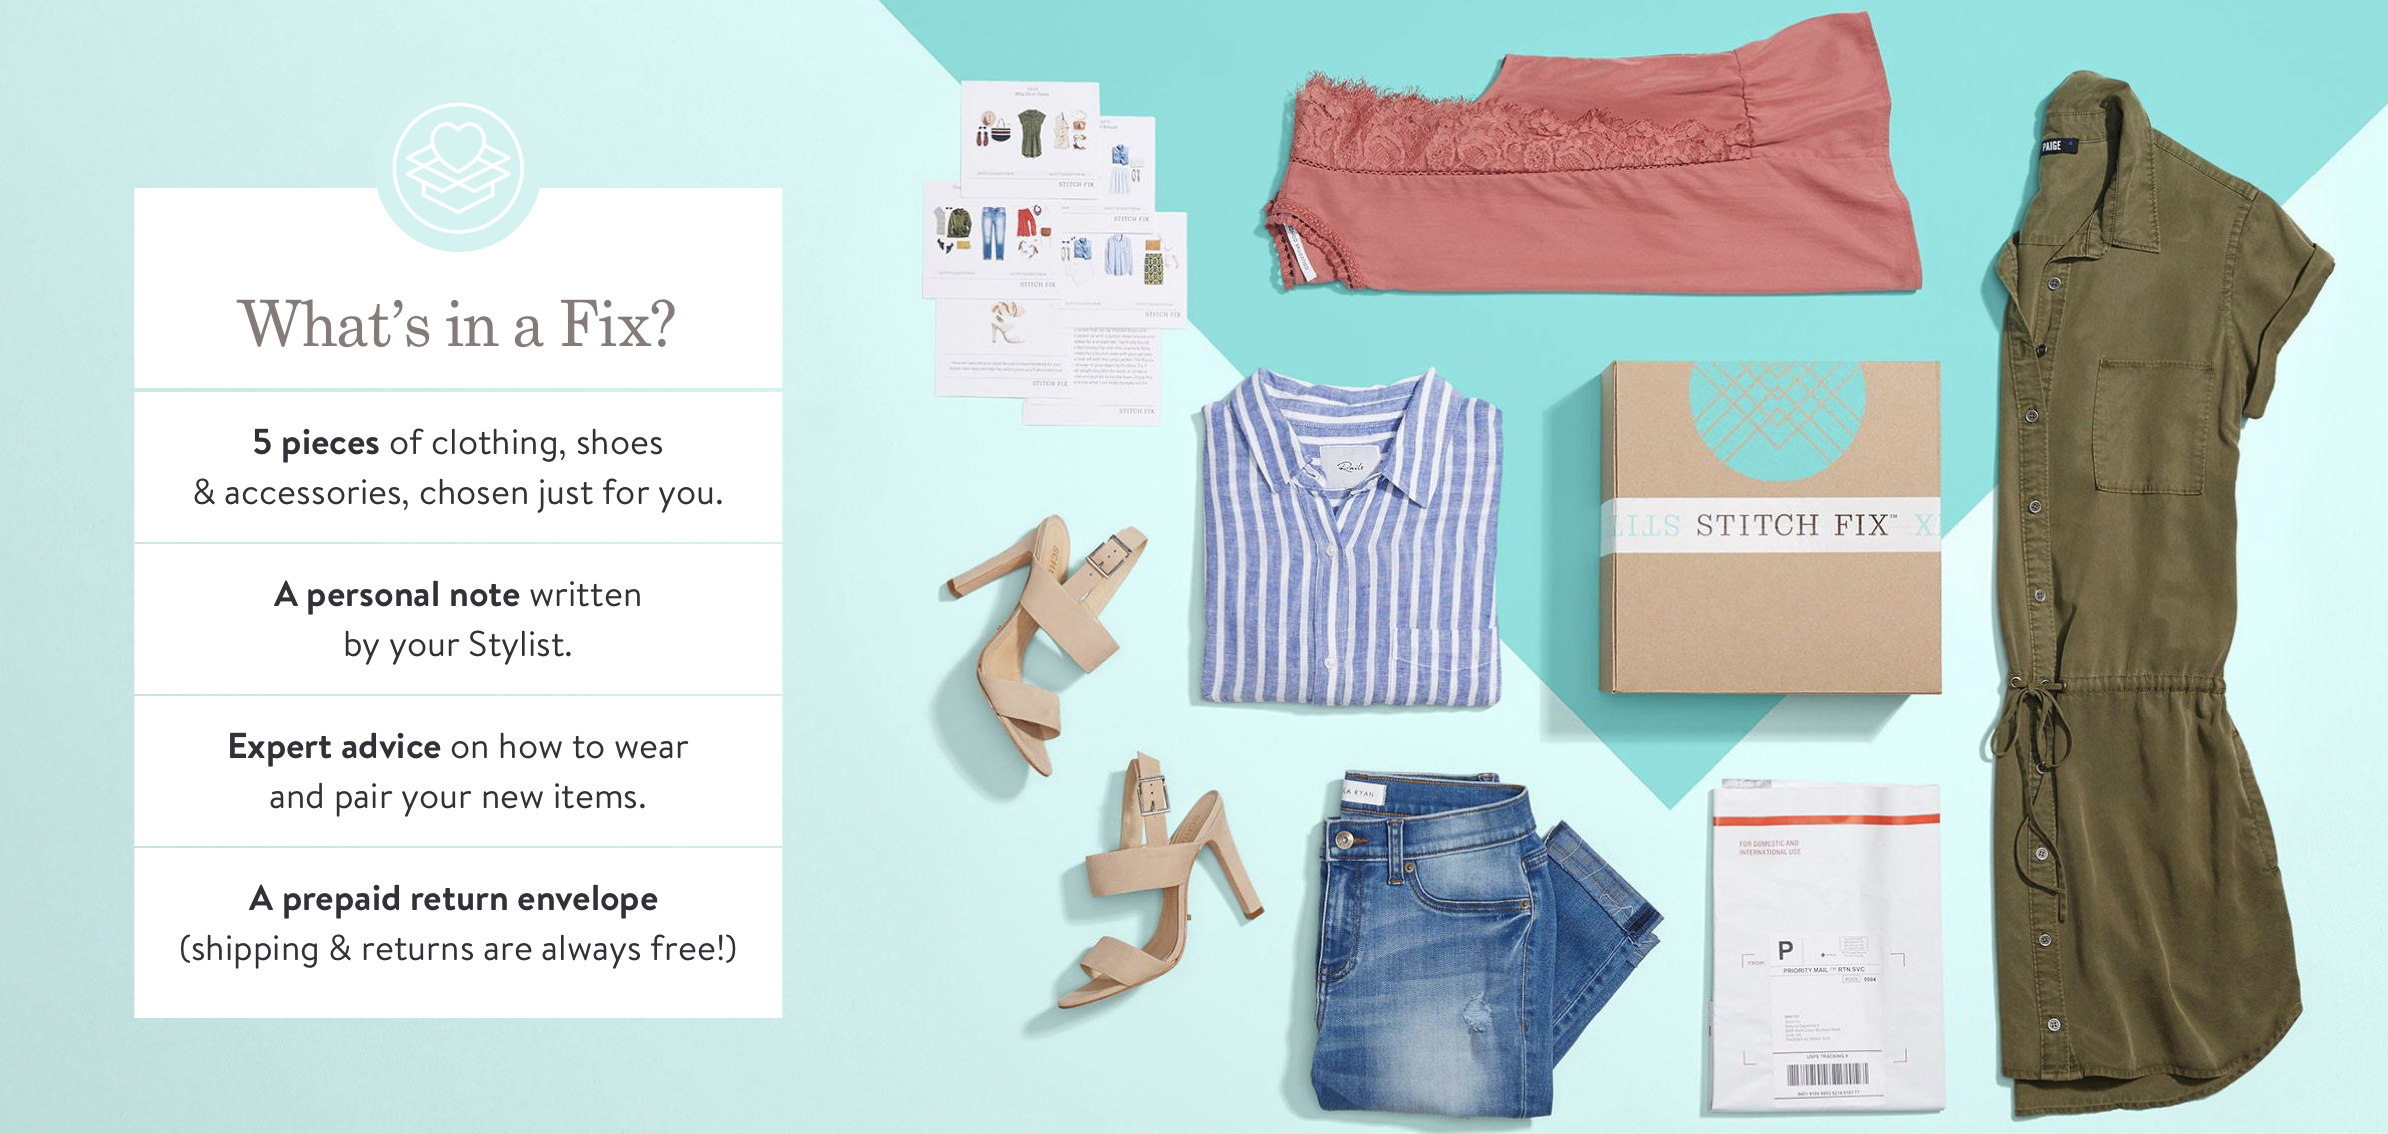 What day will stitch fix ipo come out